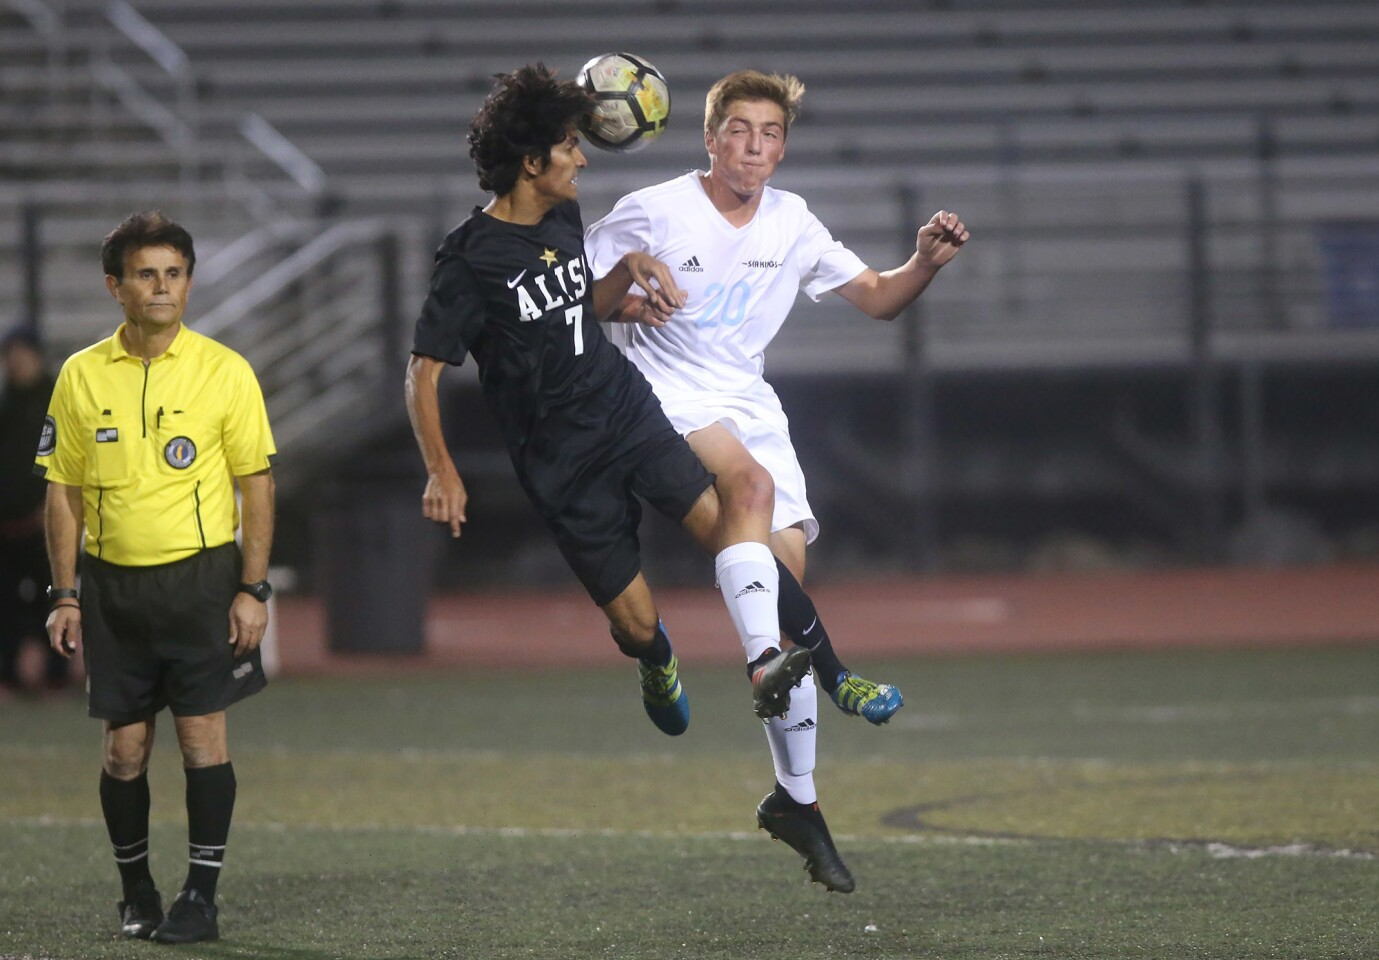 Photo Gallery: Corona del Mar vs. Aliso Niguel in boys' soccer